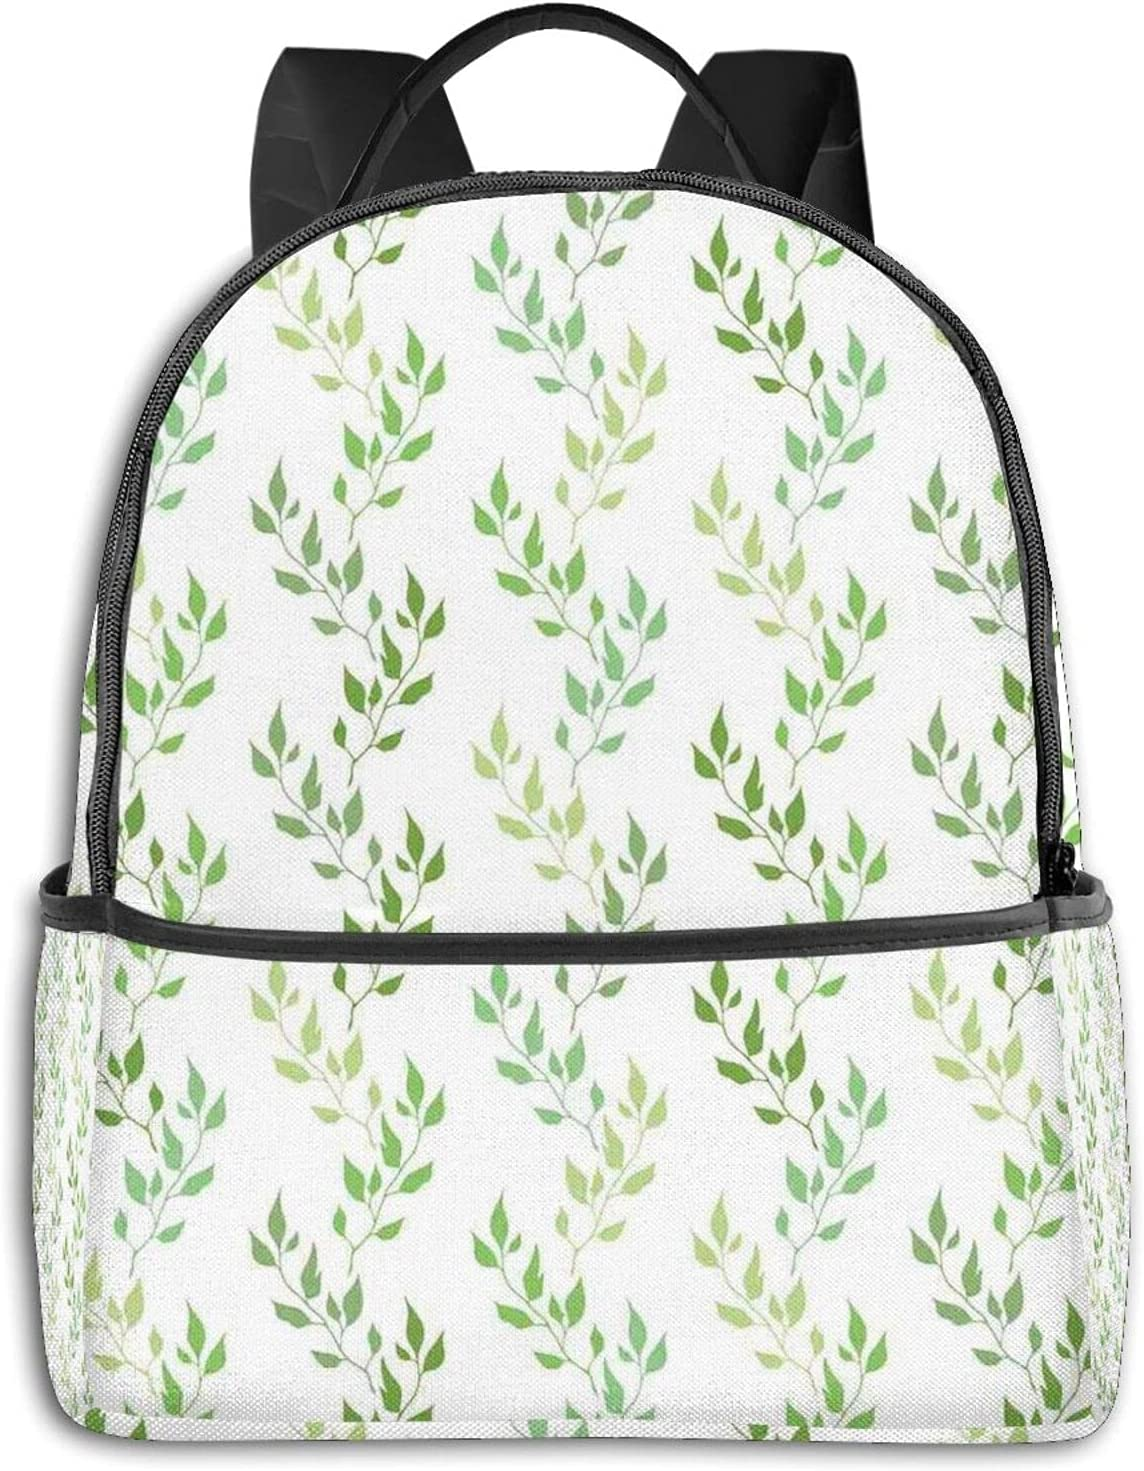 Symmetrical Outlet sale feature Olive Leaves Factory outlet And Wavy Branches With Ethnic Patterns